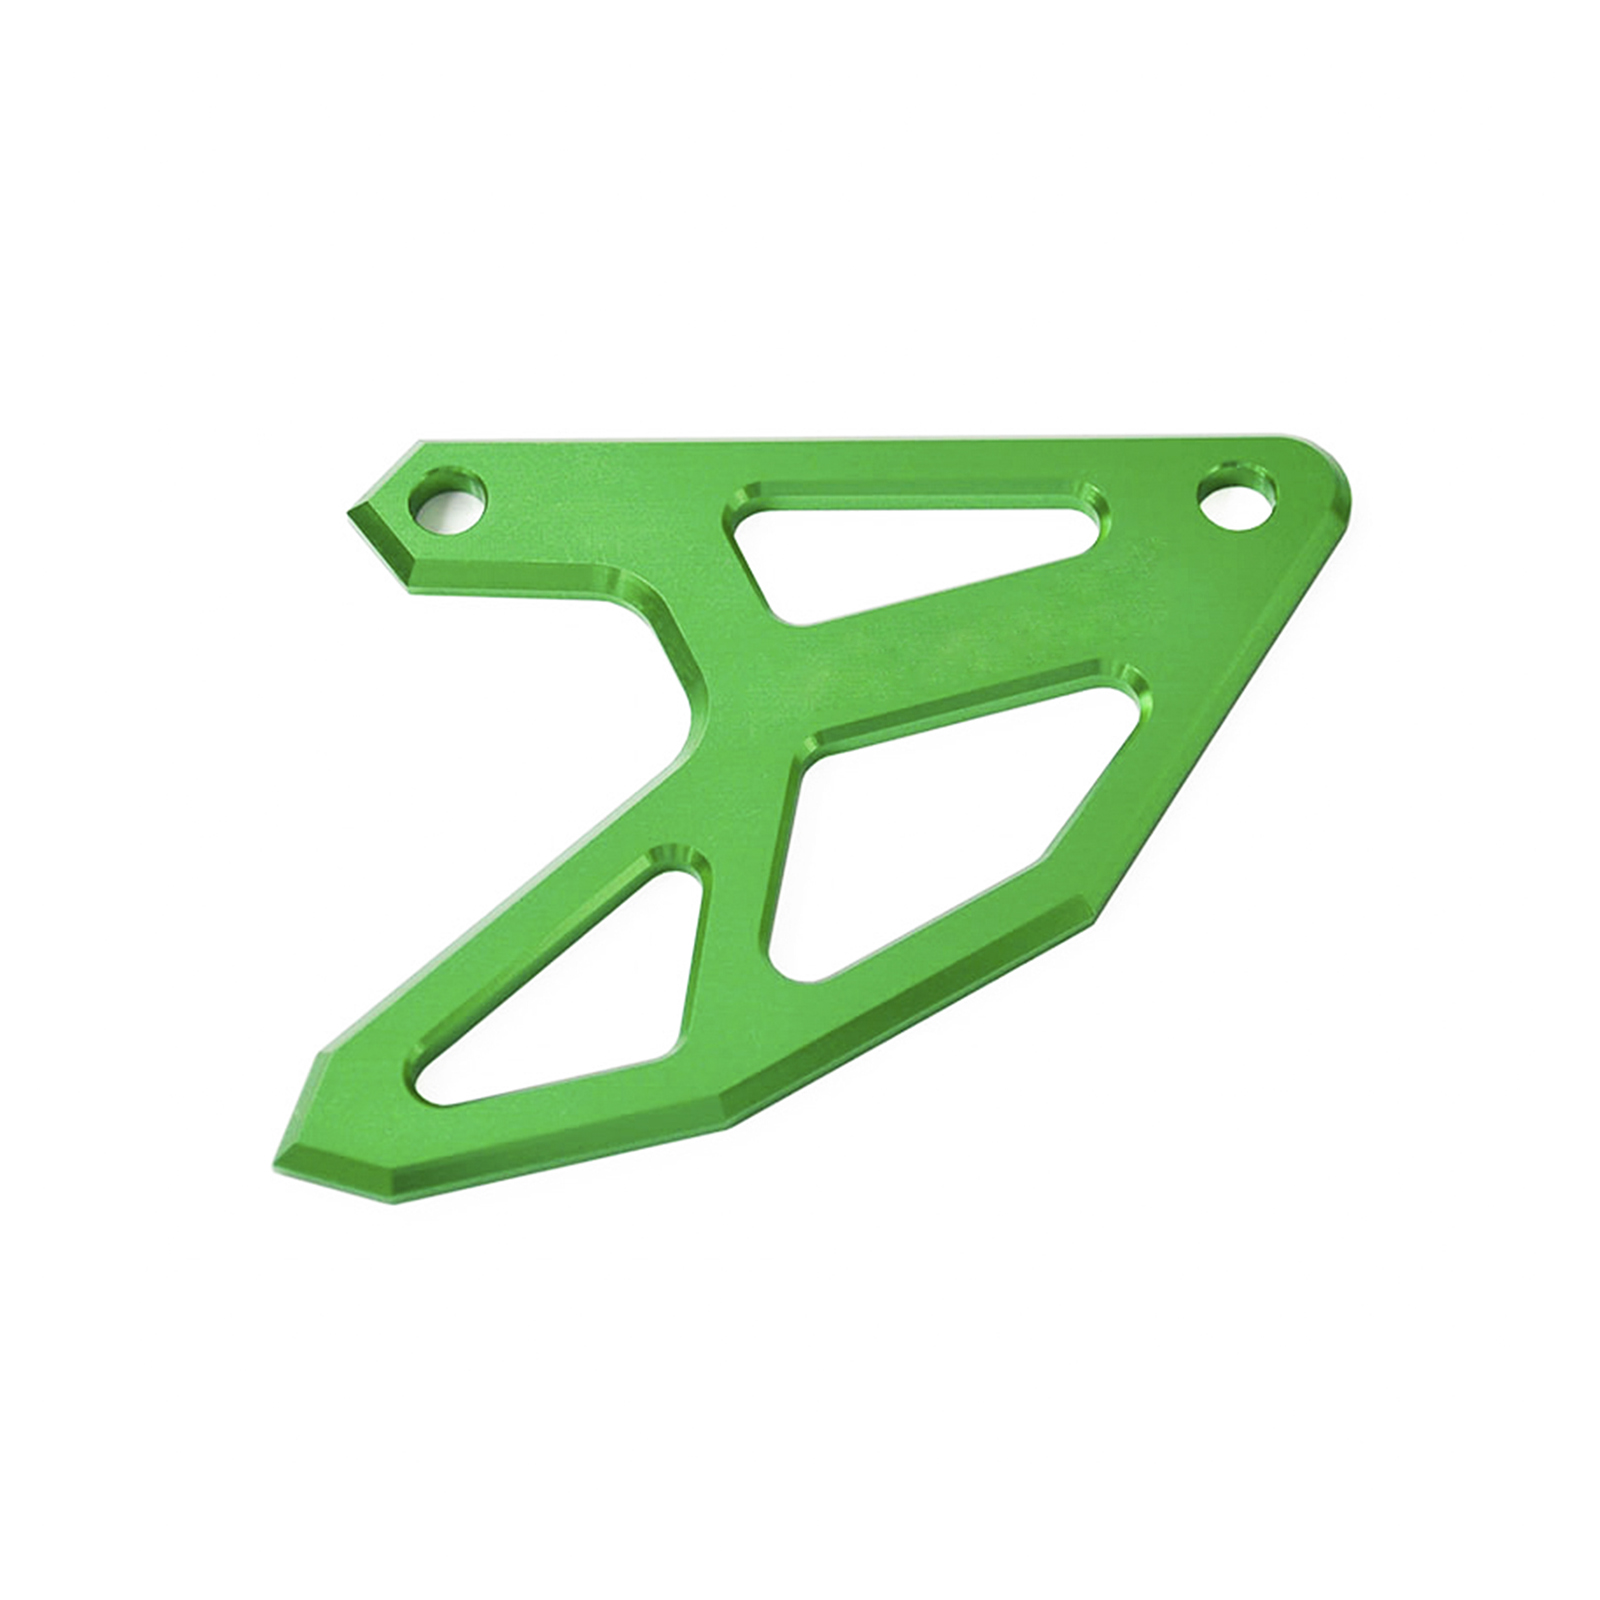 NICECNC CNC Billet Rear Brake Disc Guard Potector Cover For Kawasaki KX125 KX250 KX250F KX450F KLX450R